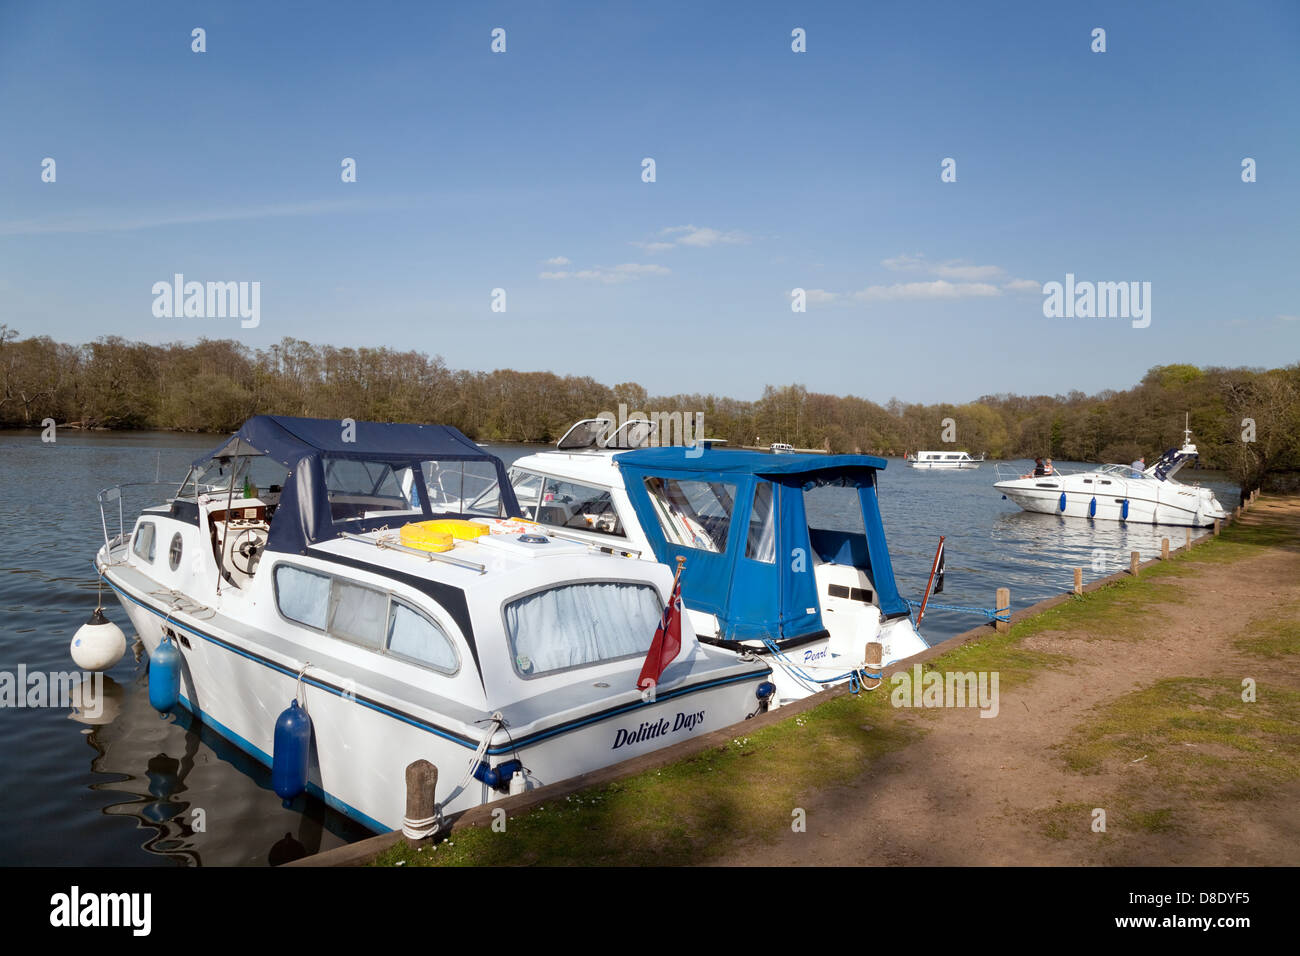 Motor cruisers boats moored for the evening, Salhouse broad, Norfolk Broads, East Anglia UK - Stock Image